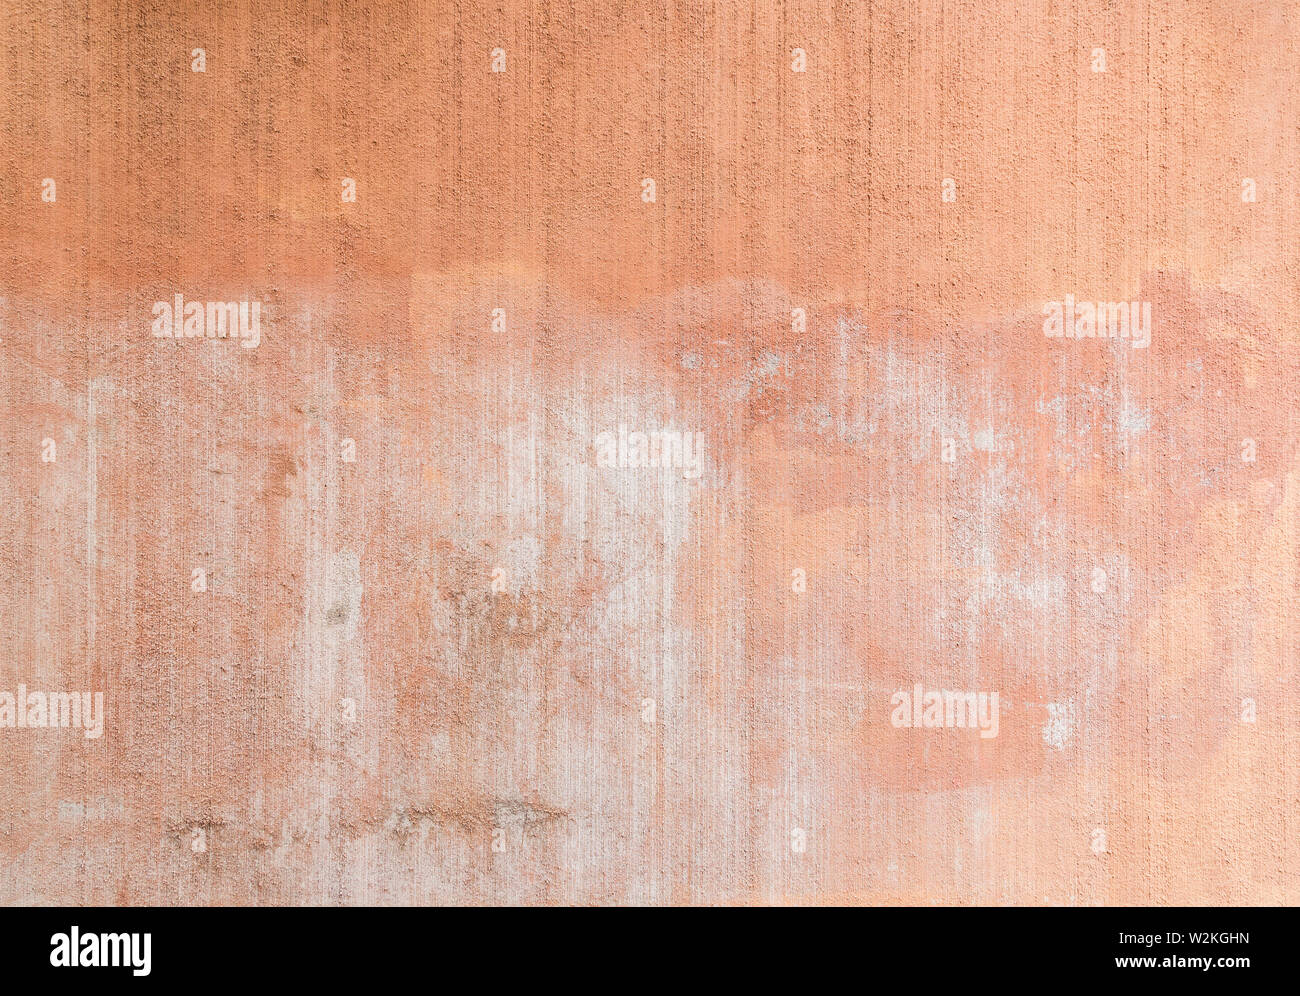 Plastered, painted, weathered, rough and red, orange or peachy concrete or stone wall with marks as a result of graffiti removal. Copy space. Stock Photo